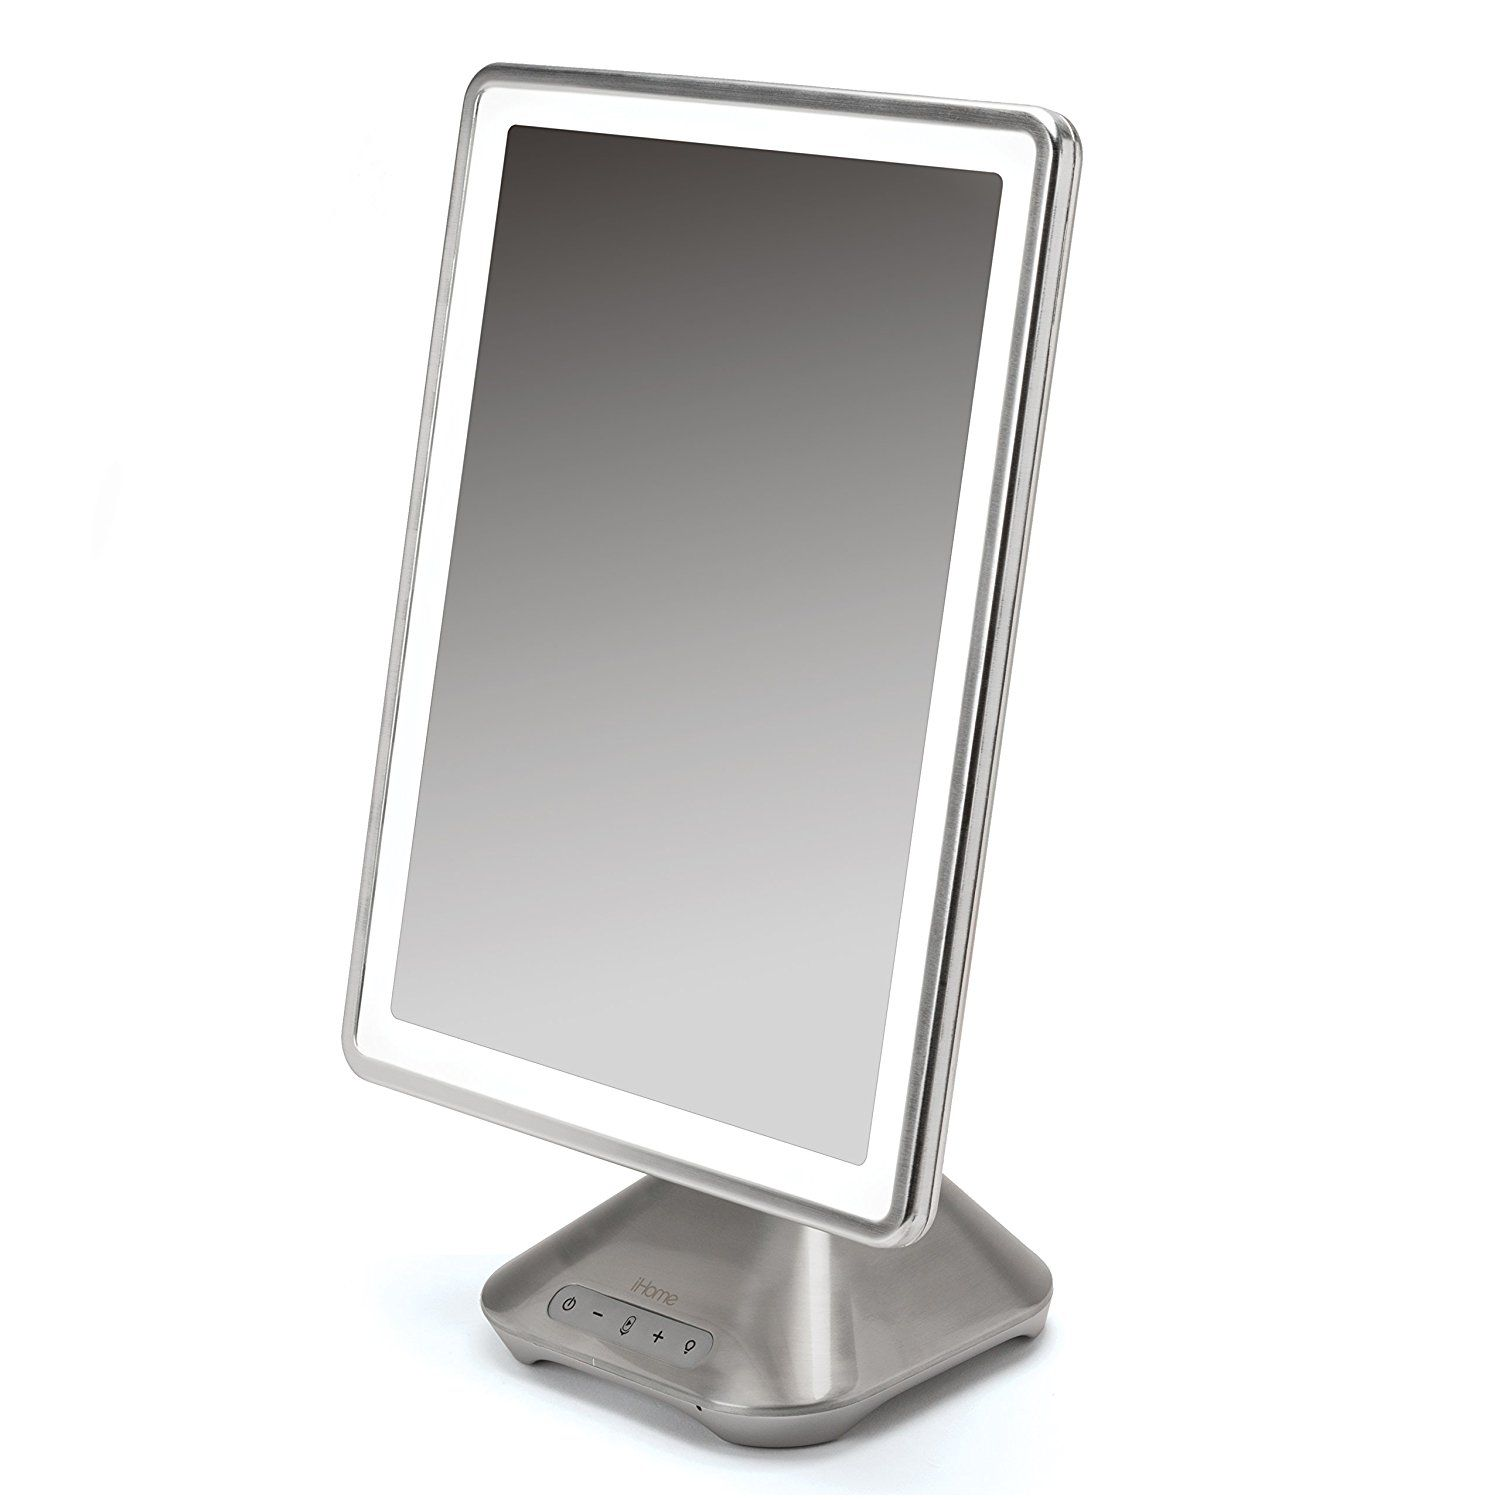 Amazon Com Ihome 10 X 13 Icvbt10 Reflect Pro Portable Adjustable Vanity Mirror With Bluetooth Audio Hands Free Speakerphon Vanity Mirror Mirror Led Lights